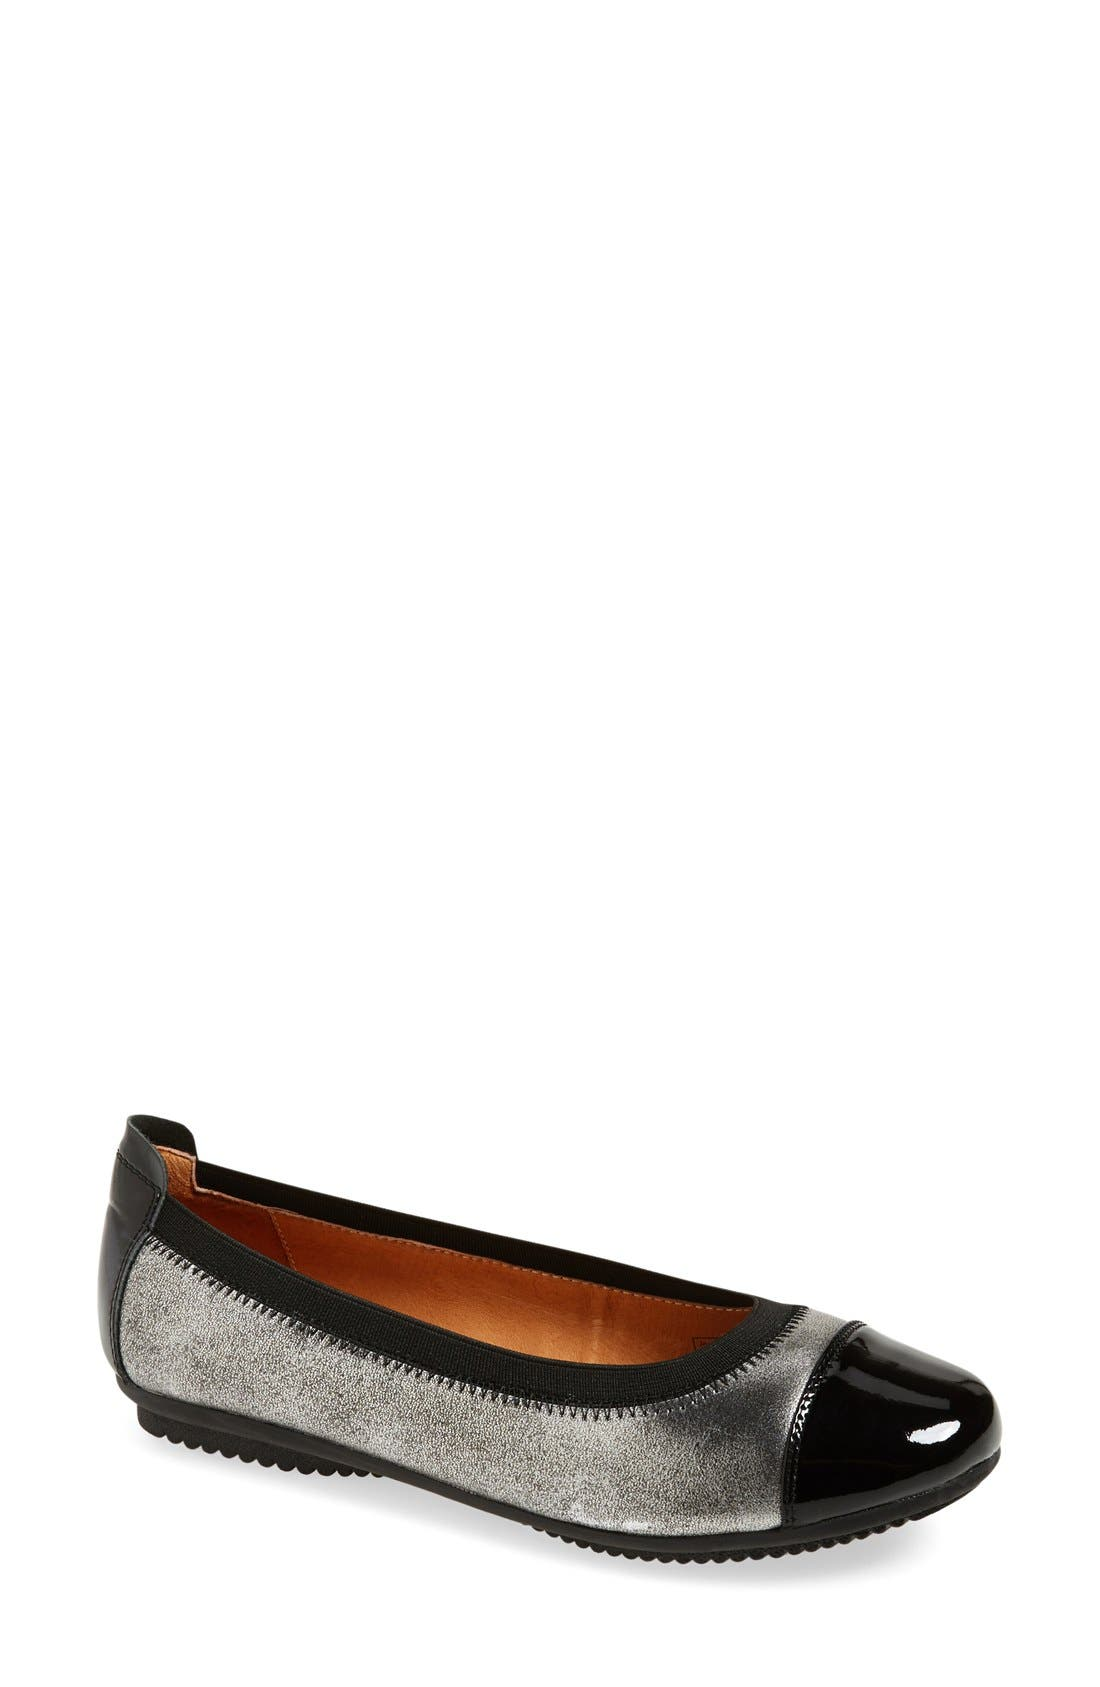 Pippa 07 Flat,                         Main,                         color, Basalt Leather